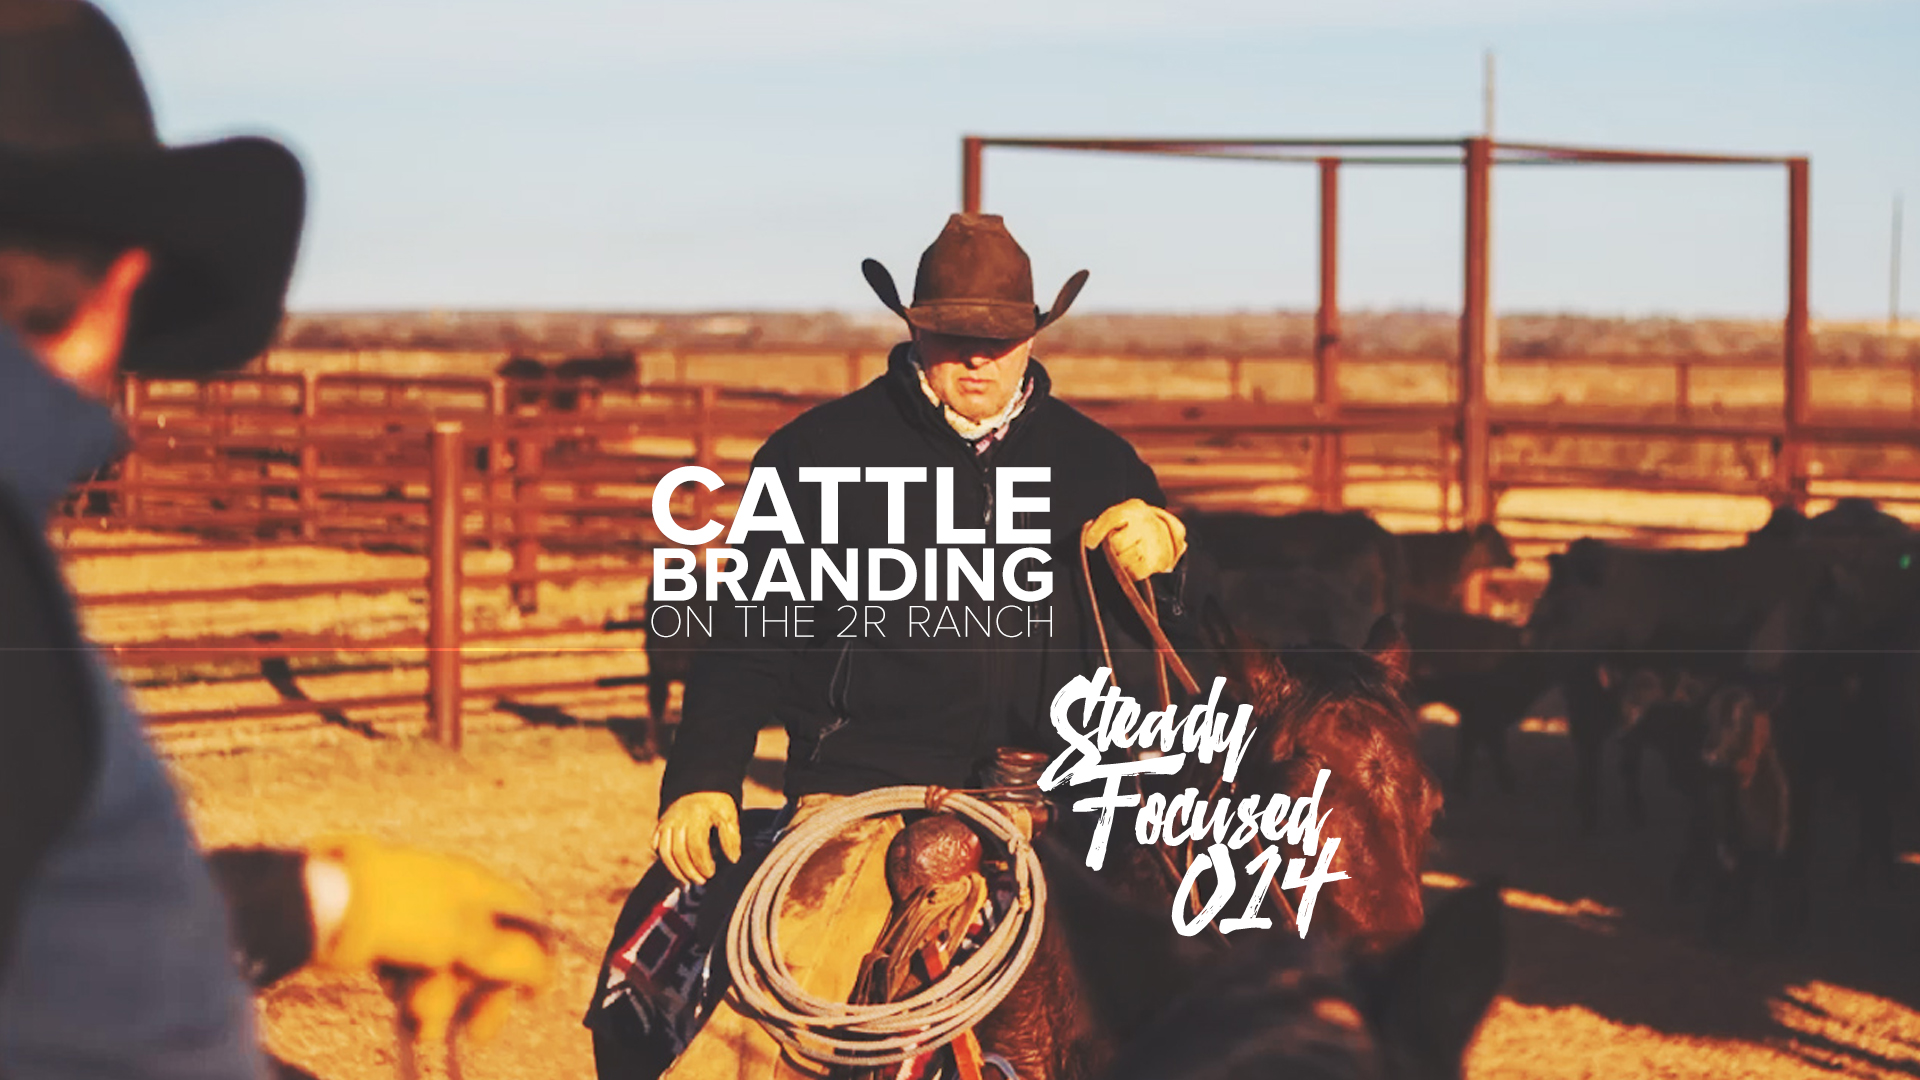 cattle-branding-photography-ranch-steady-focused